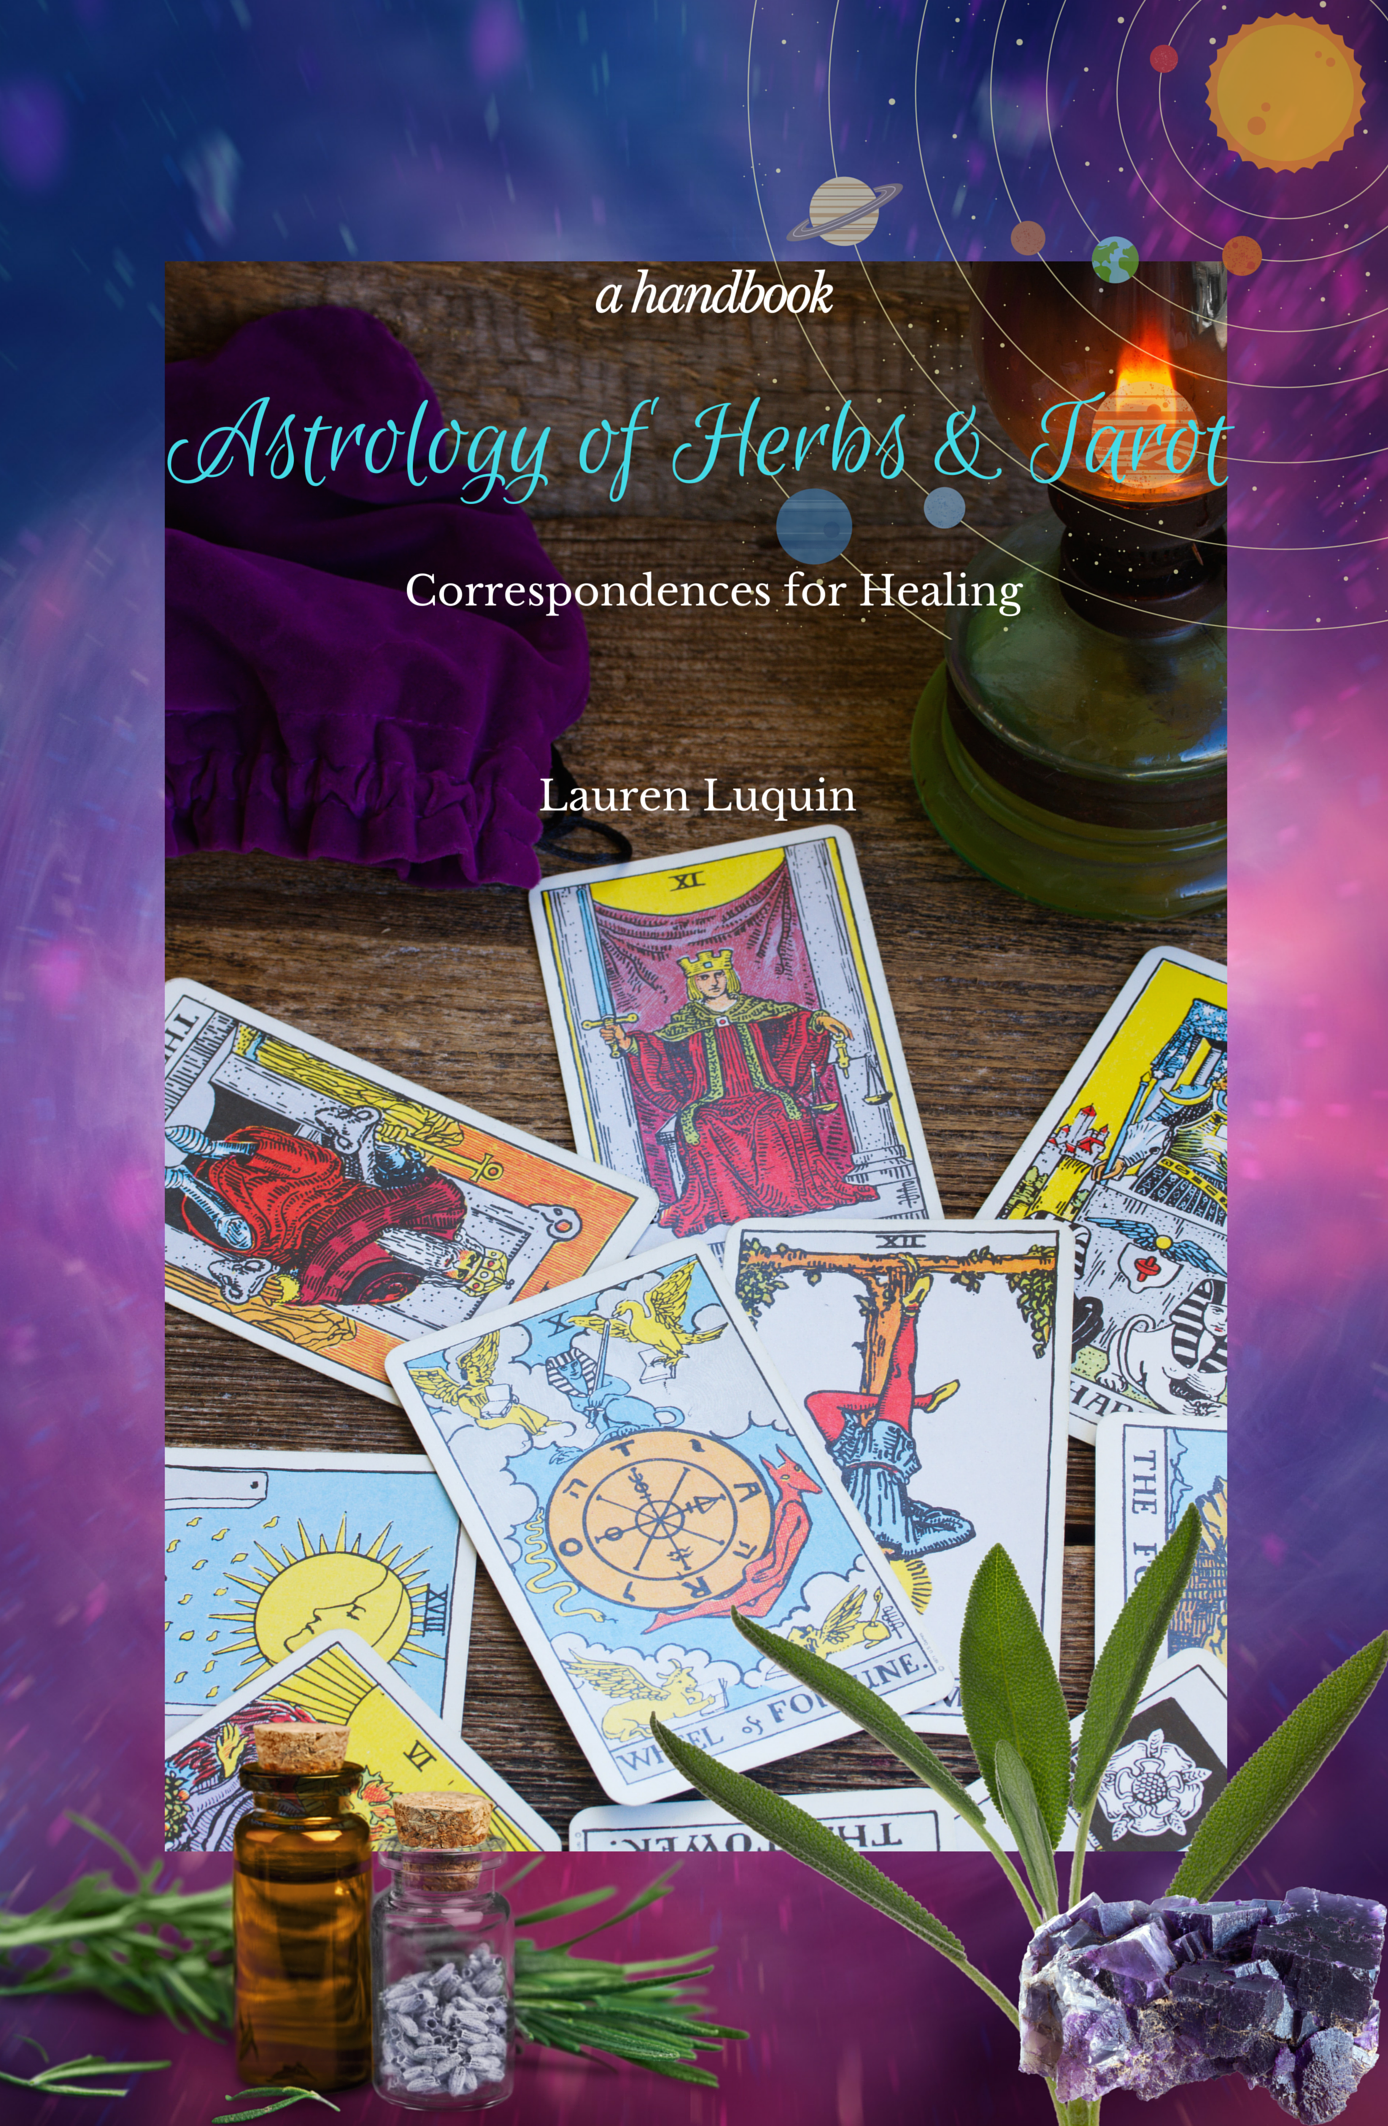 Astrology of Herbs & Tarot: Correspondences for Healing